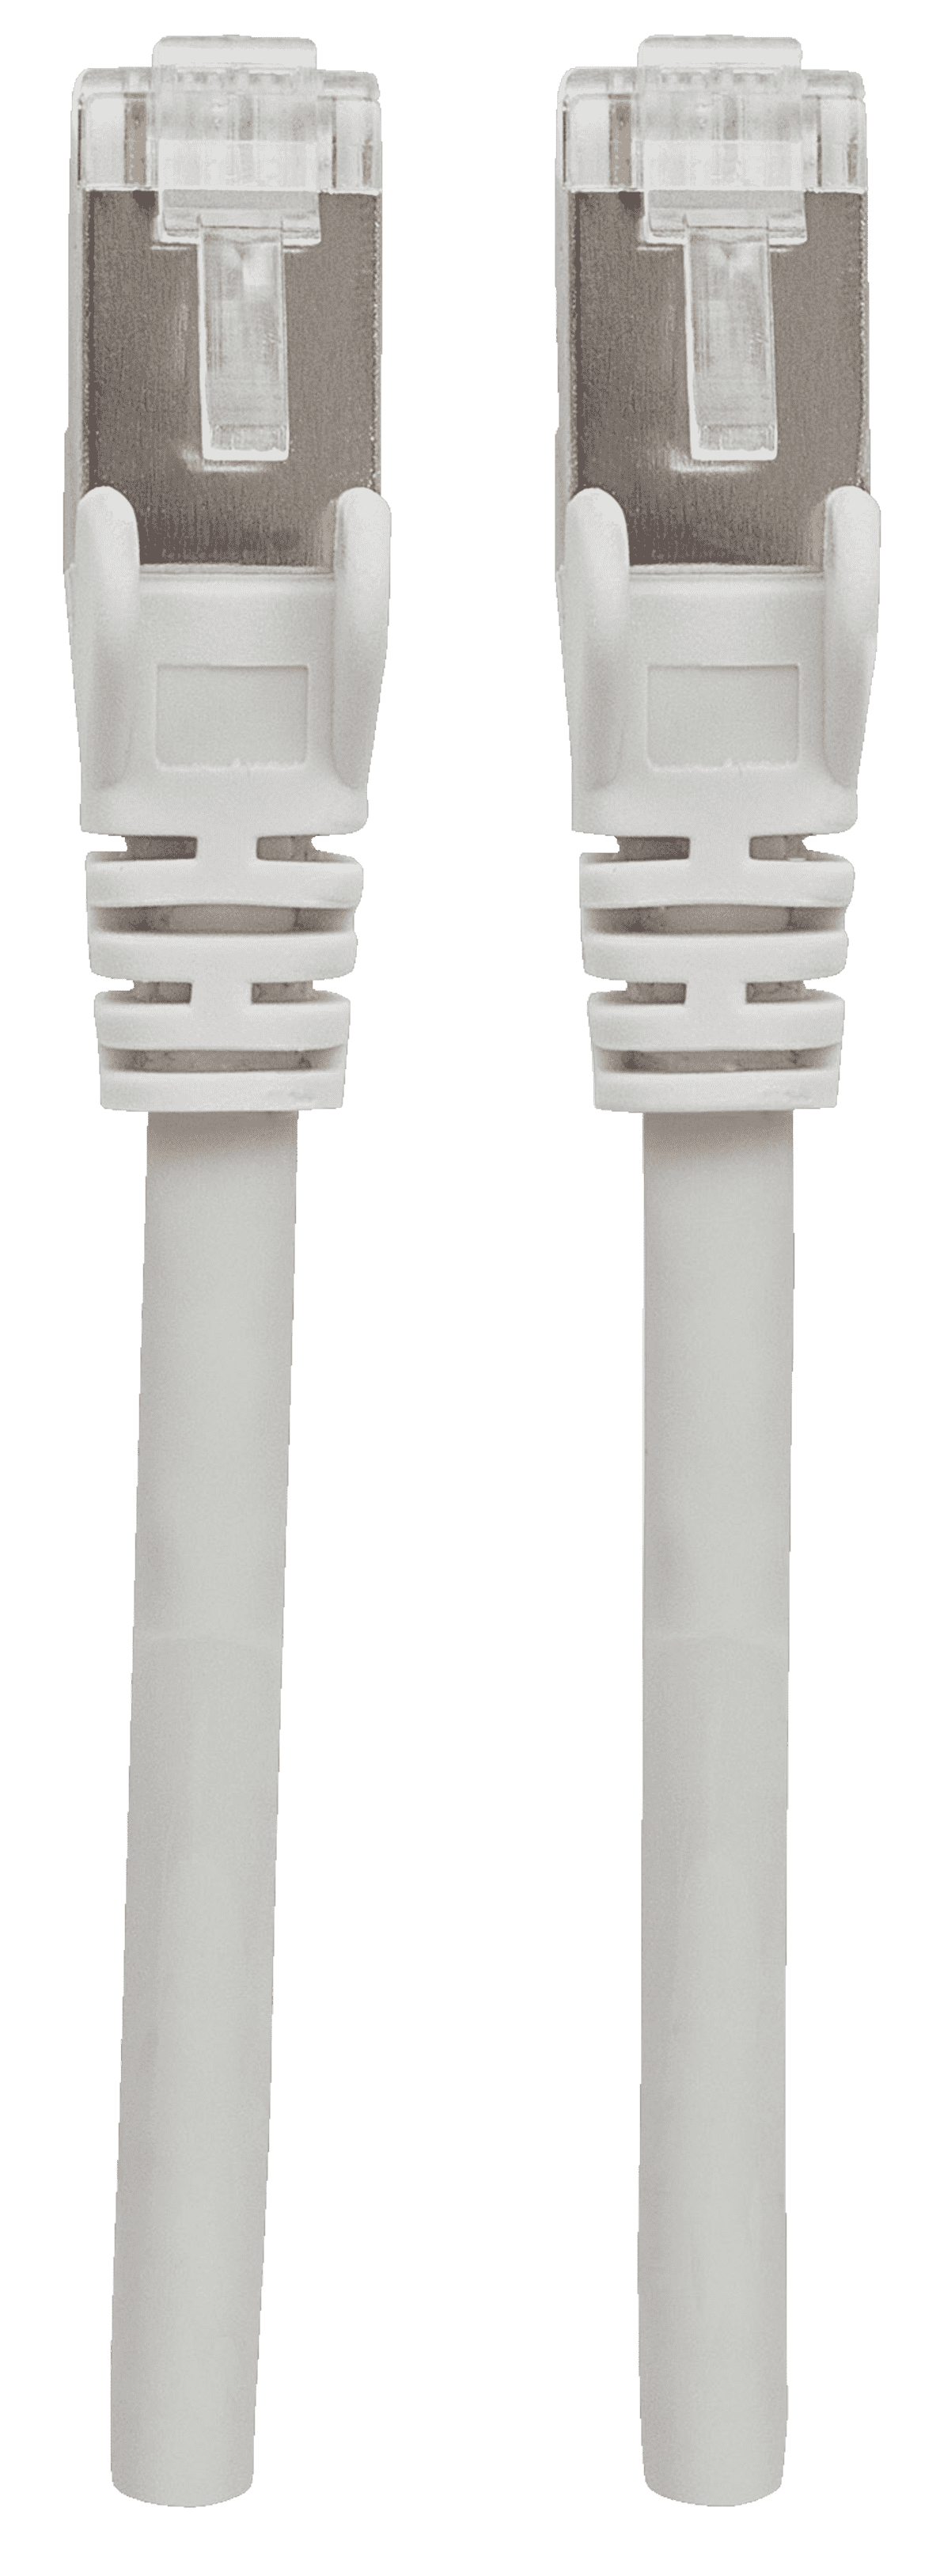 INTELLINET  736749 Patchkabel 10 m in Grau | 00766623736749